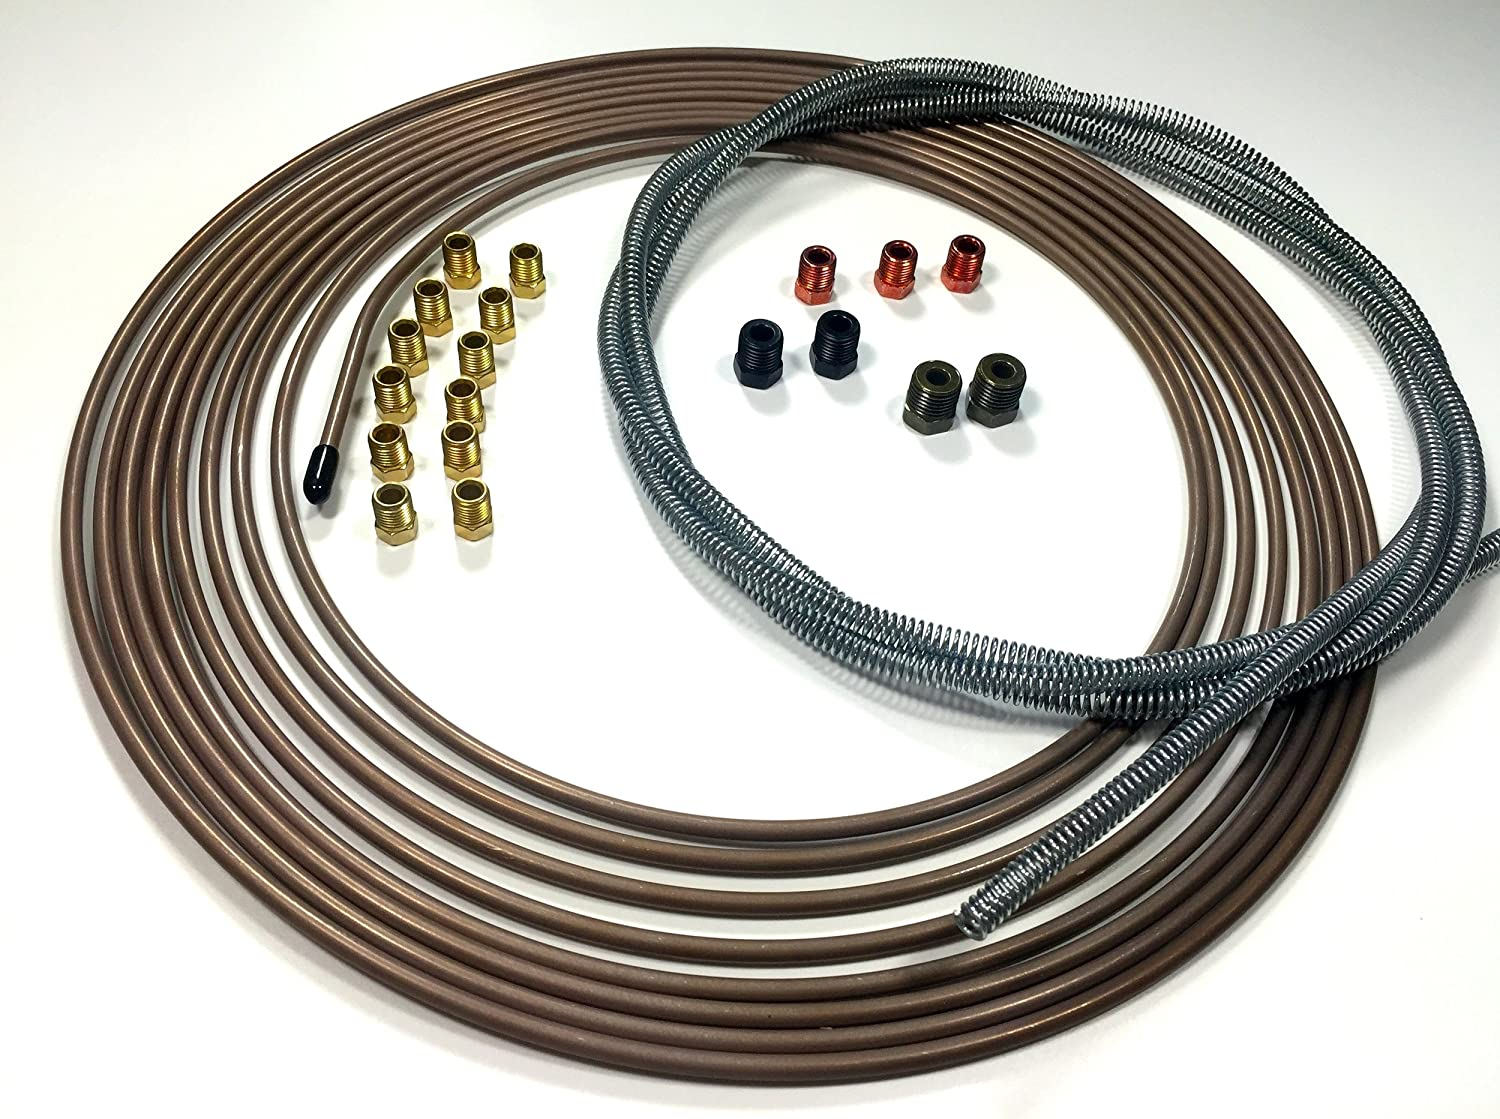 25 Ft. of 3/16' (4.75 mm) Copper Nickel Tubing with Armor and Fittings The Stop Shop